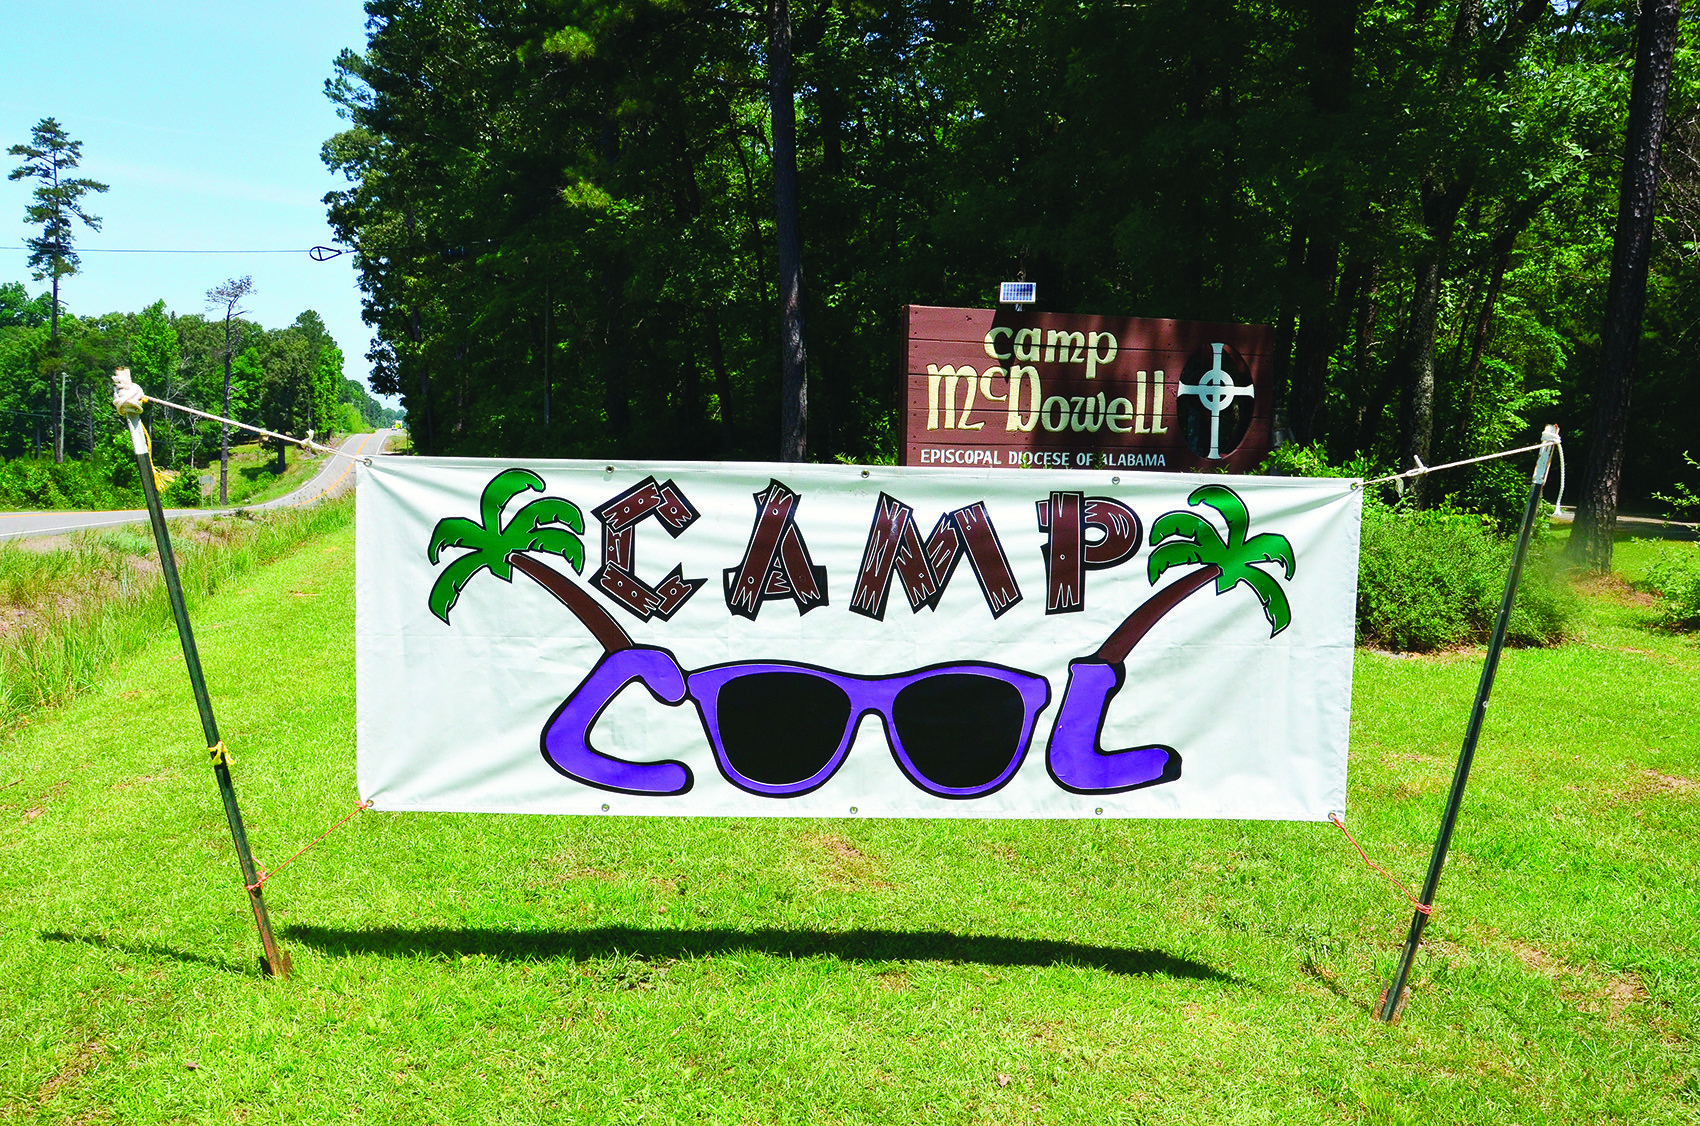 Camp COOL is held each June at Camp McDowell. The camp is designed for children with cerebral palsy and spina bifida.